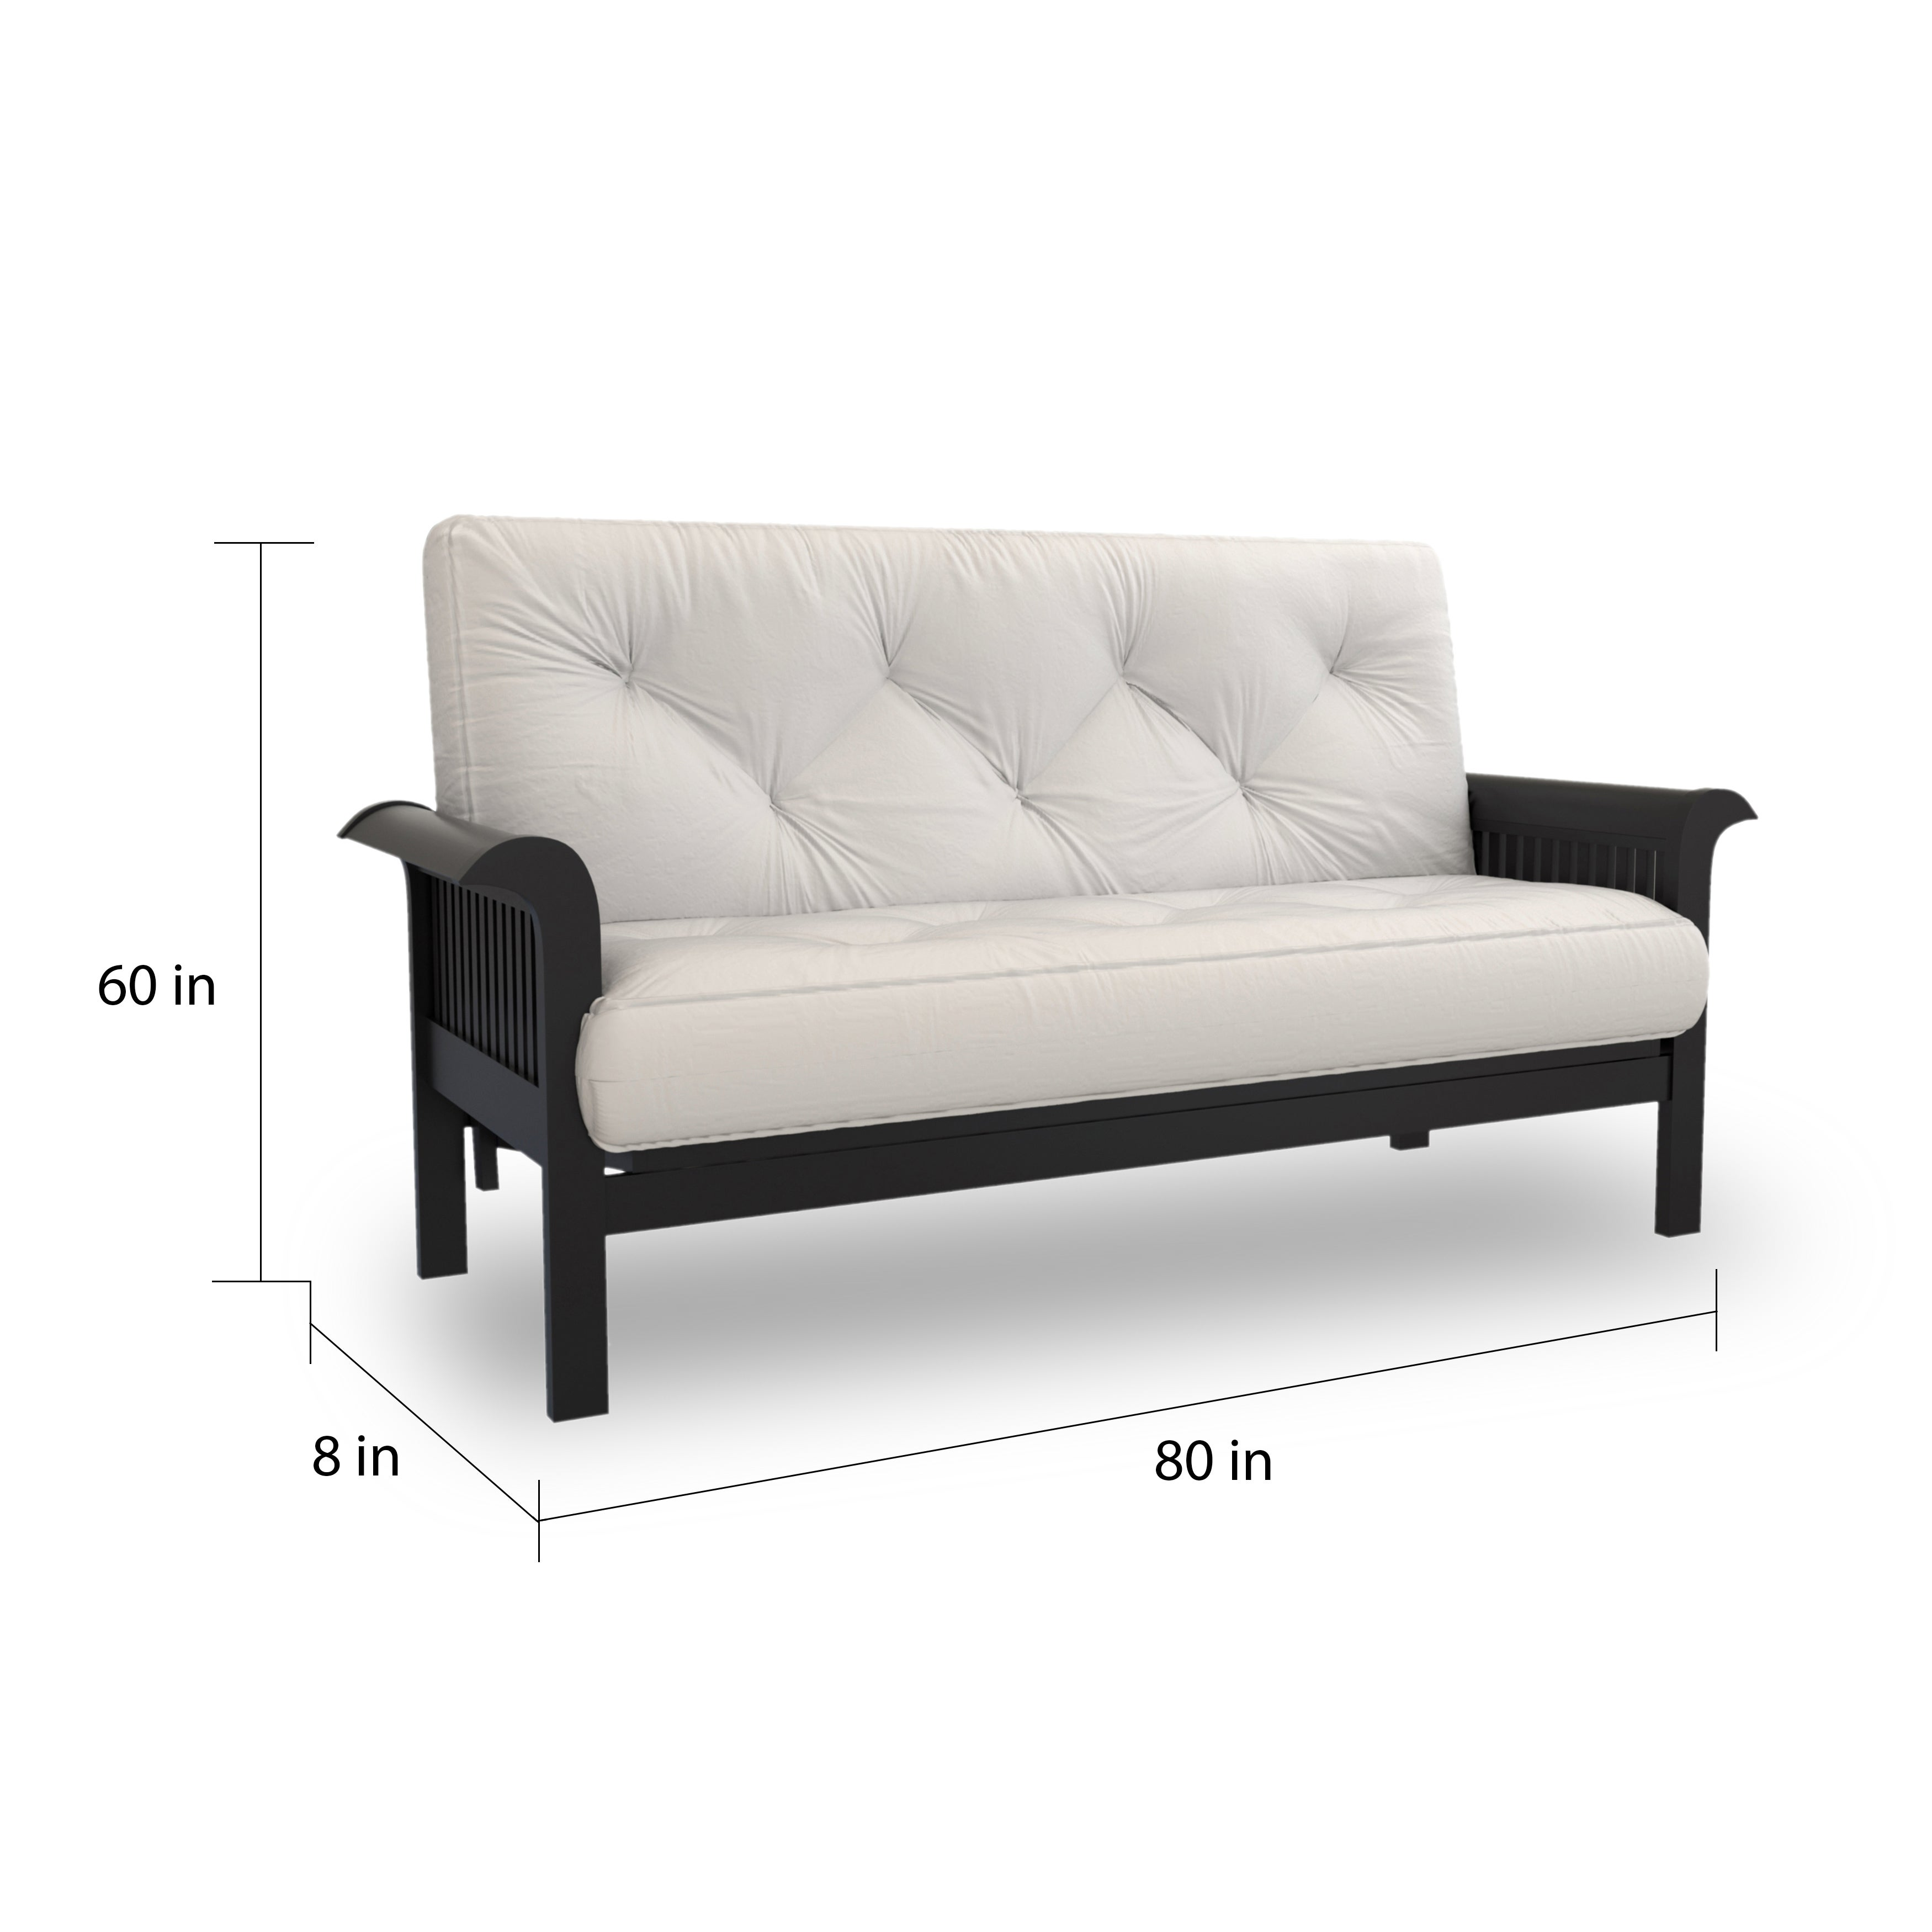 60 Inch Wide Futon Queen Size Sofa Bed With Suede Innerspring Mattress Frame